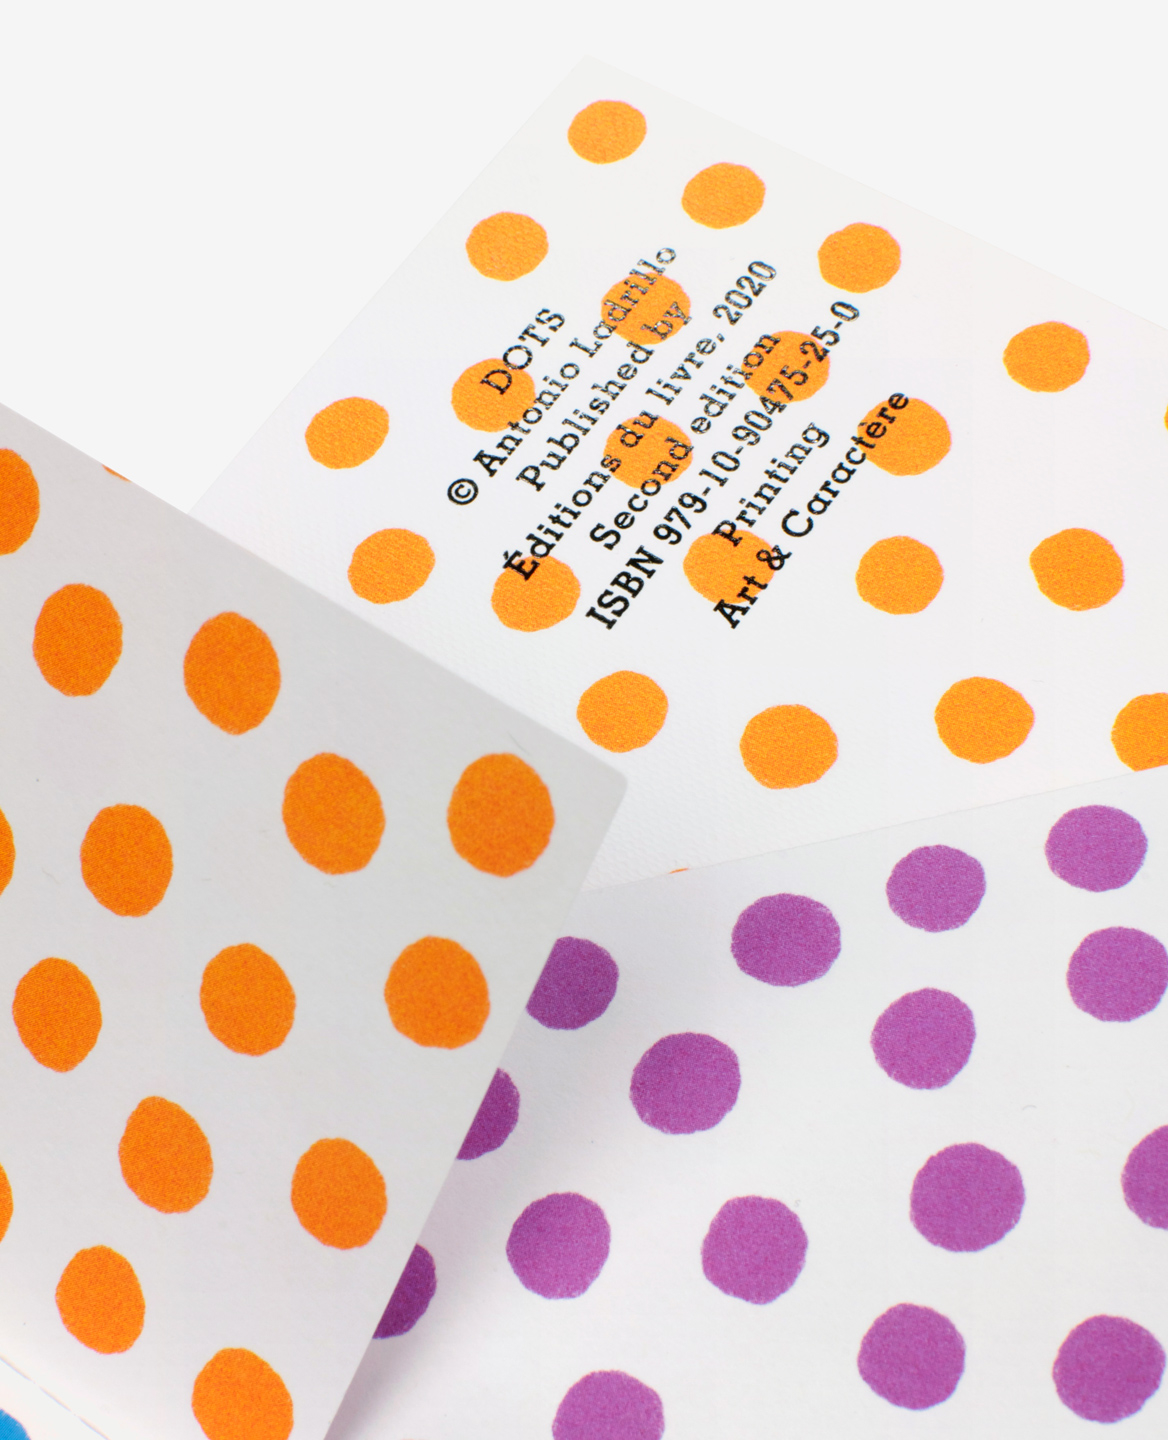 Brilliant foil colophon of the book Dots by Antonio Ladrillo published by Éditions du livre